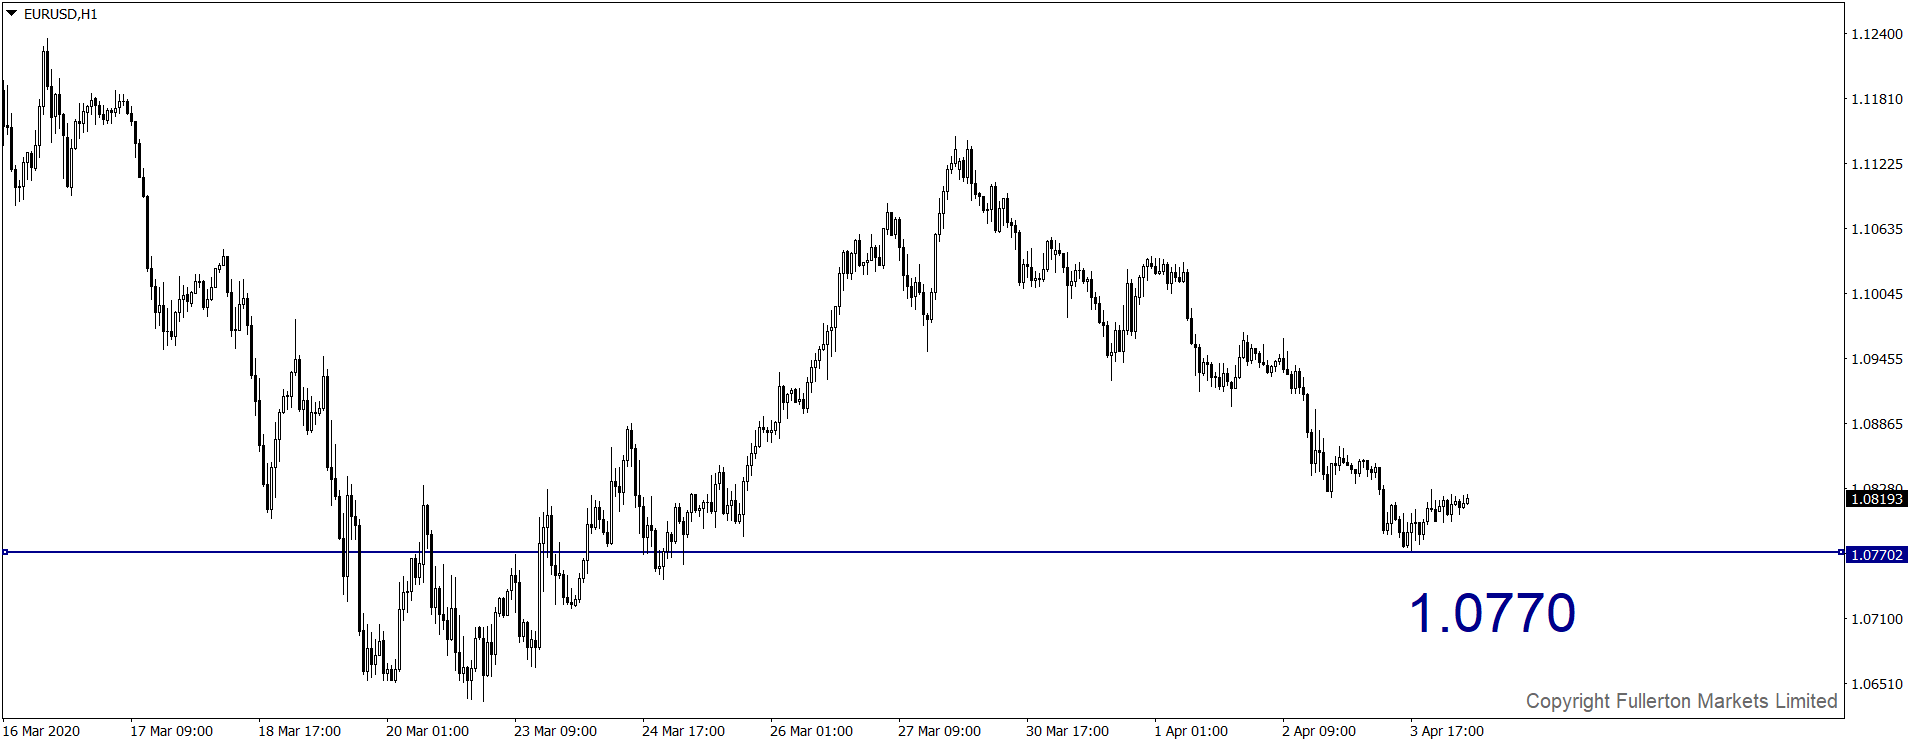 eurusd-h1-fullerton-markets-limited.png